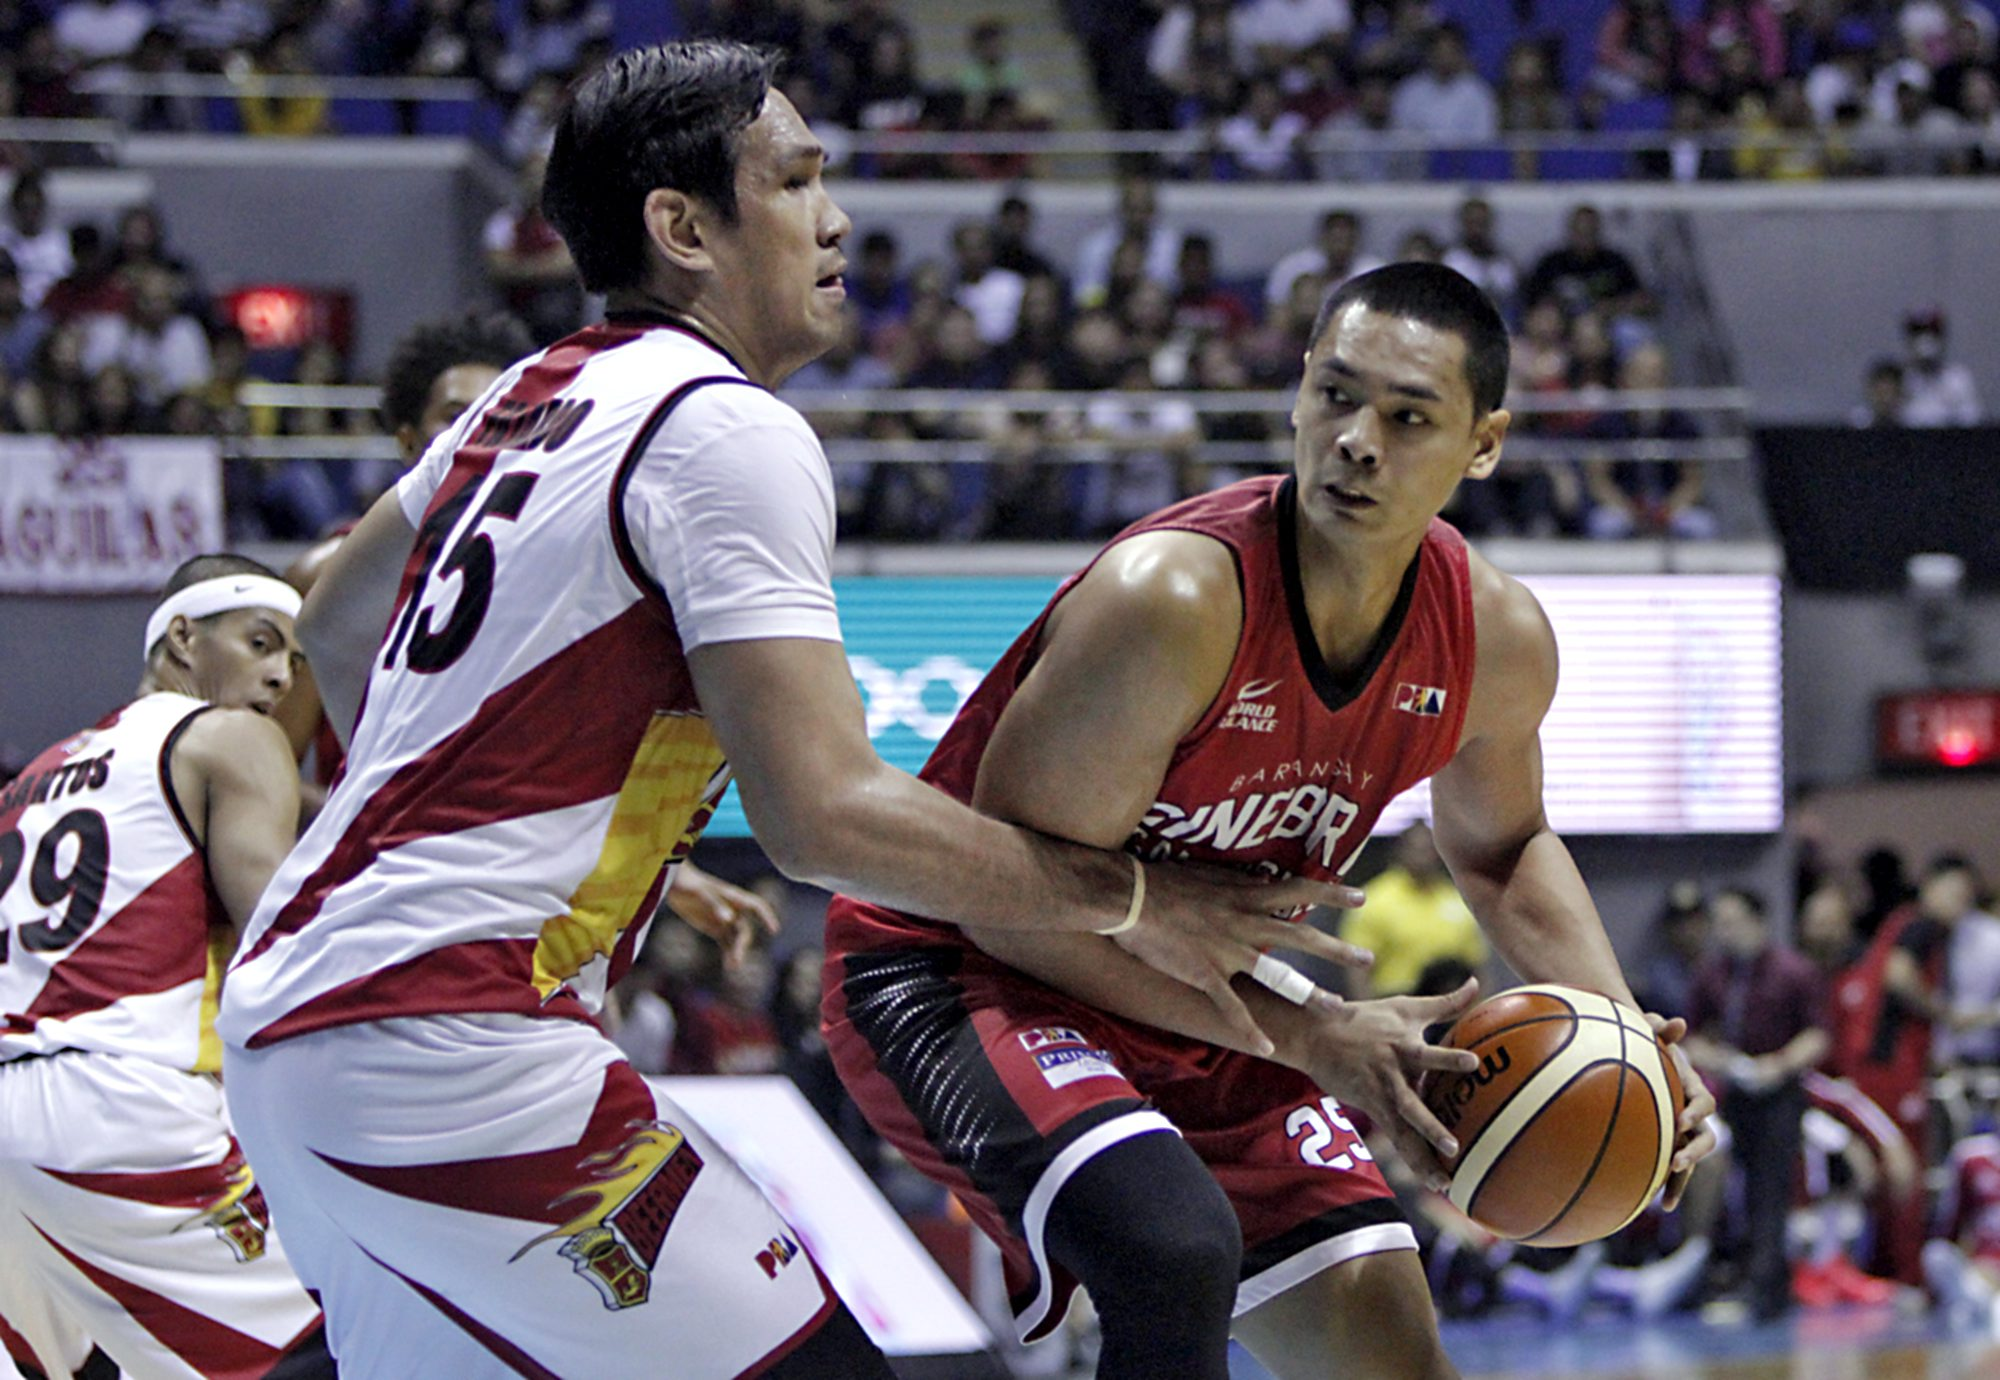 PLAYOFFS KEY FIGURES: Behemoths Japeth Aguilar of Barangay Ginebra and June Mar Fajardo of San Miguel Beer are expected to carry the loads for their respective teams in the title series.